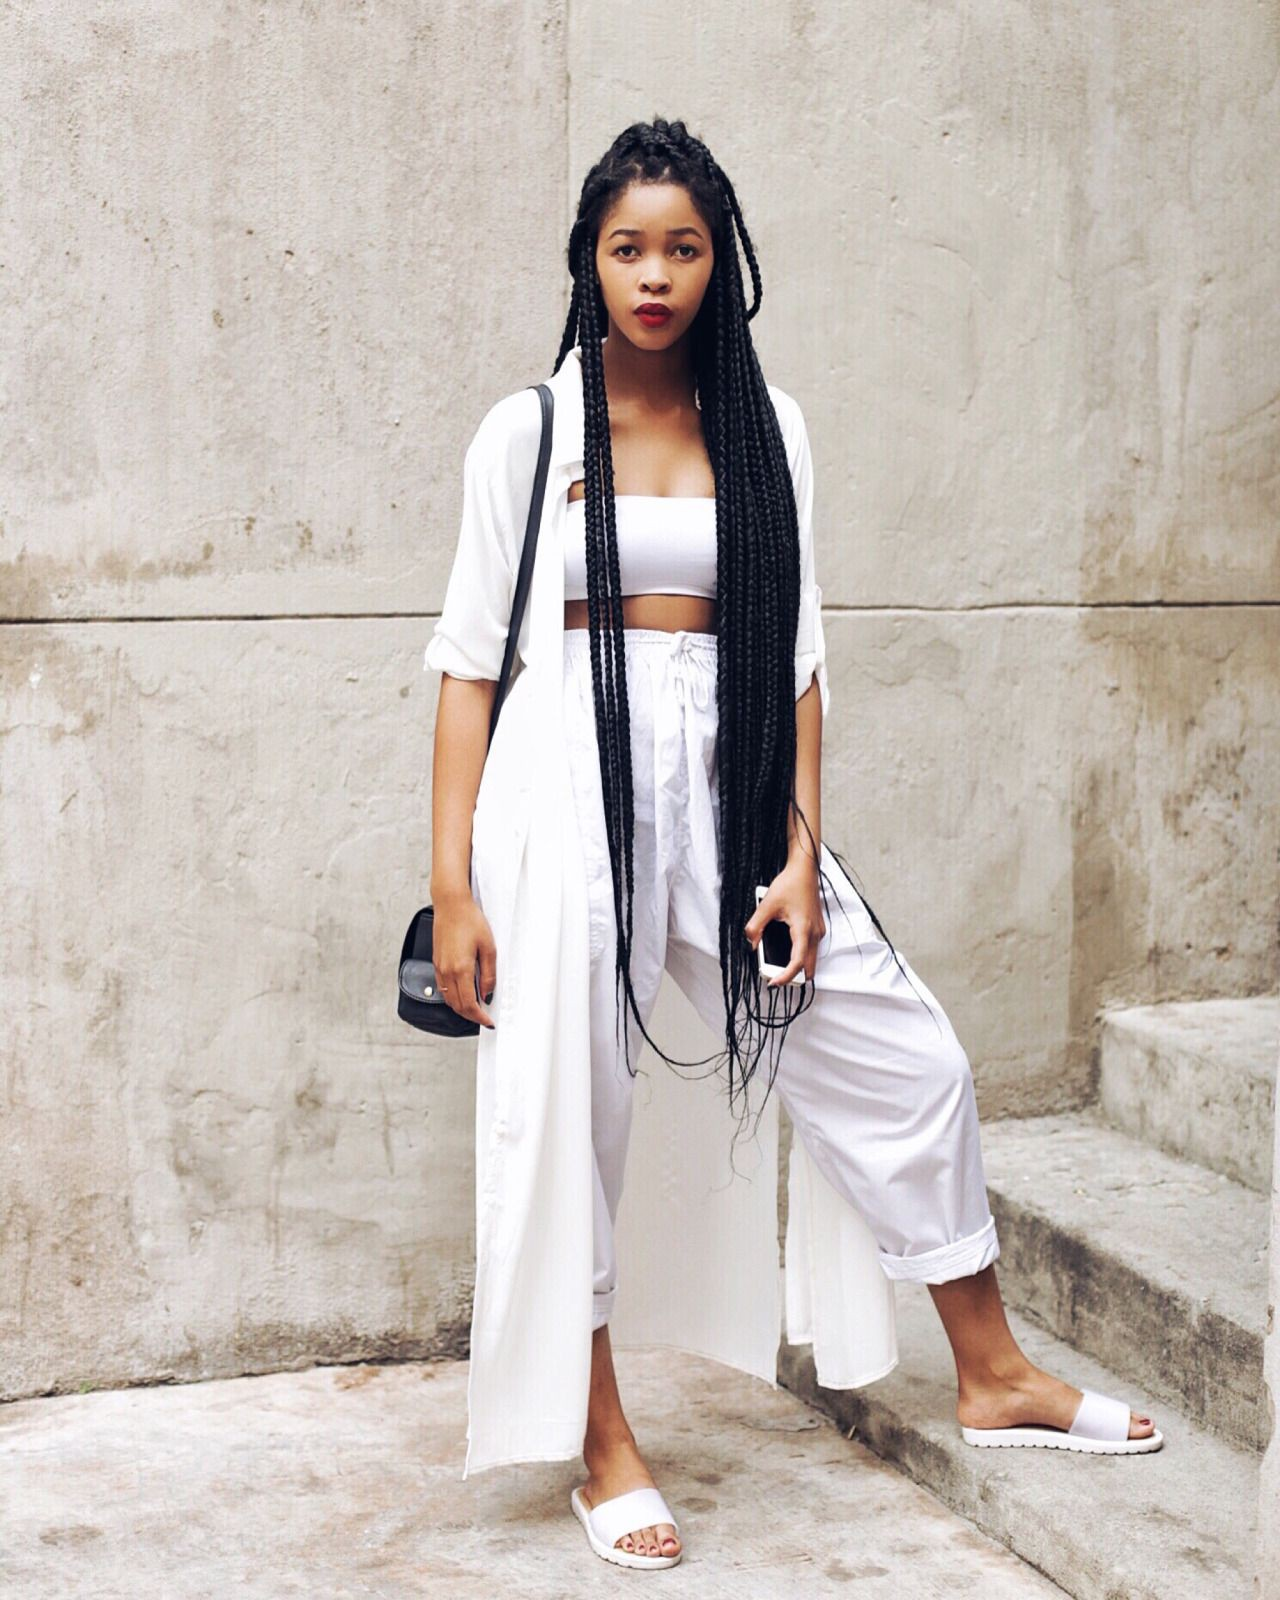 Colour outfit long braids outfits, street fashion, street style, photo shoot, formal wear, box b ...